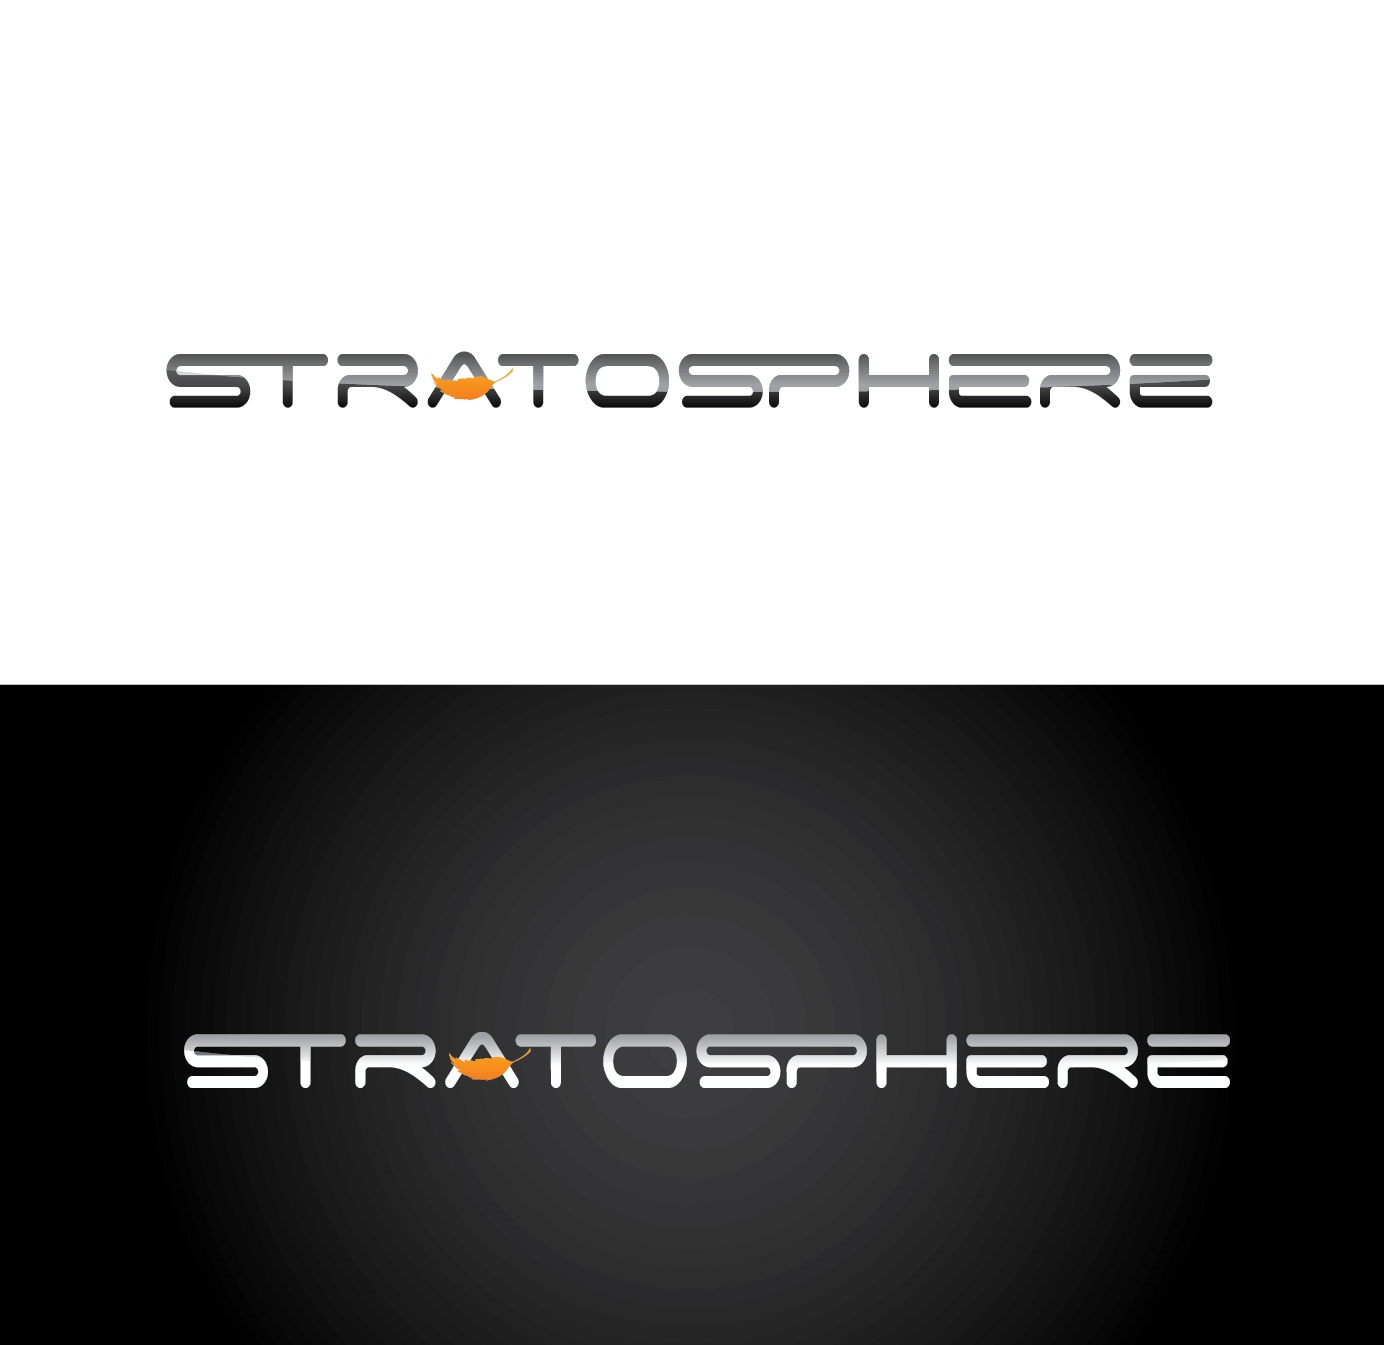 Logo Design by mediaproductionart - Entry No. 19 in the Logo Design Contest Captivating Logo Design for Stratosphere.